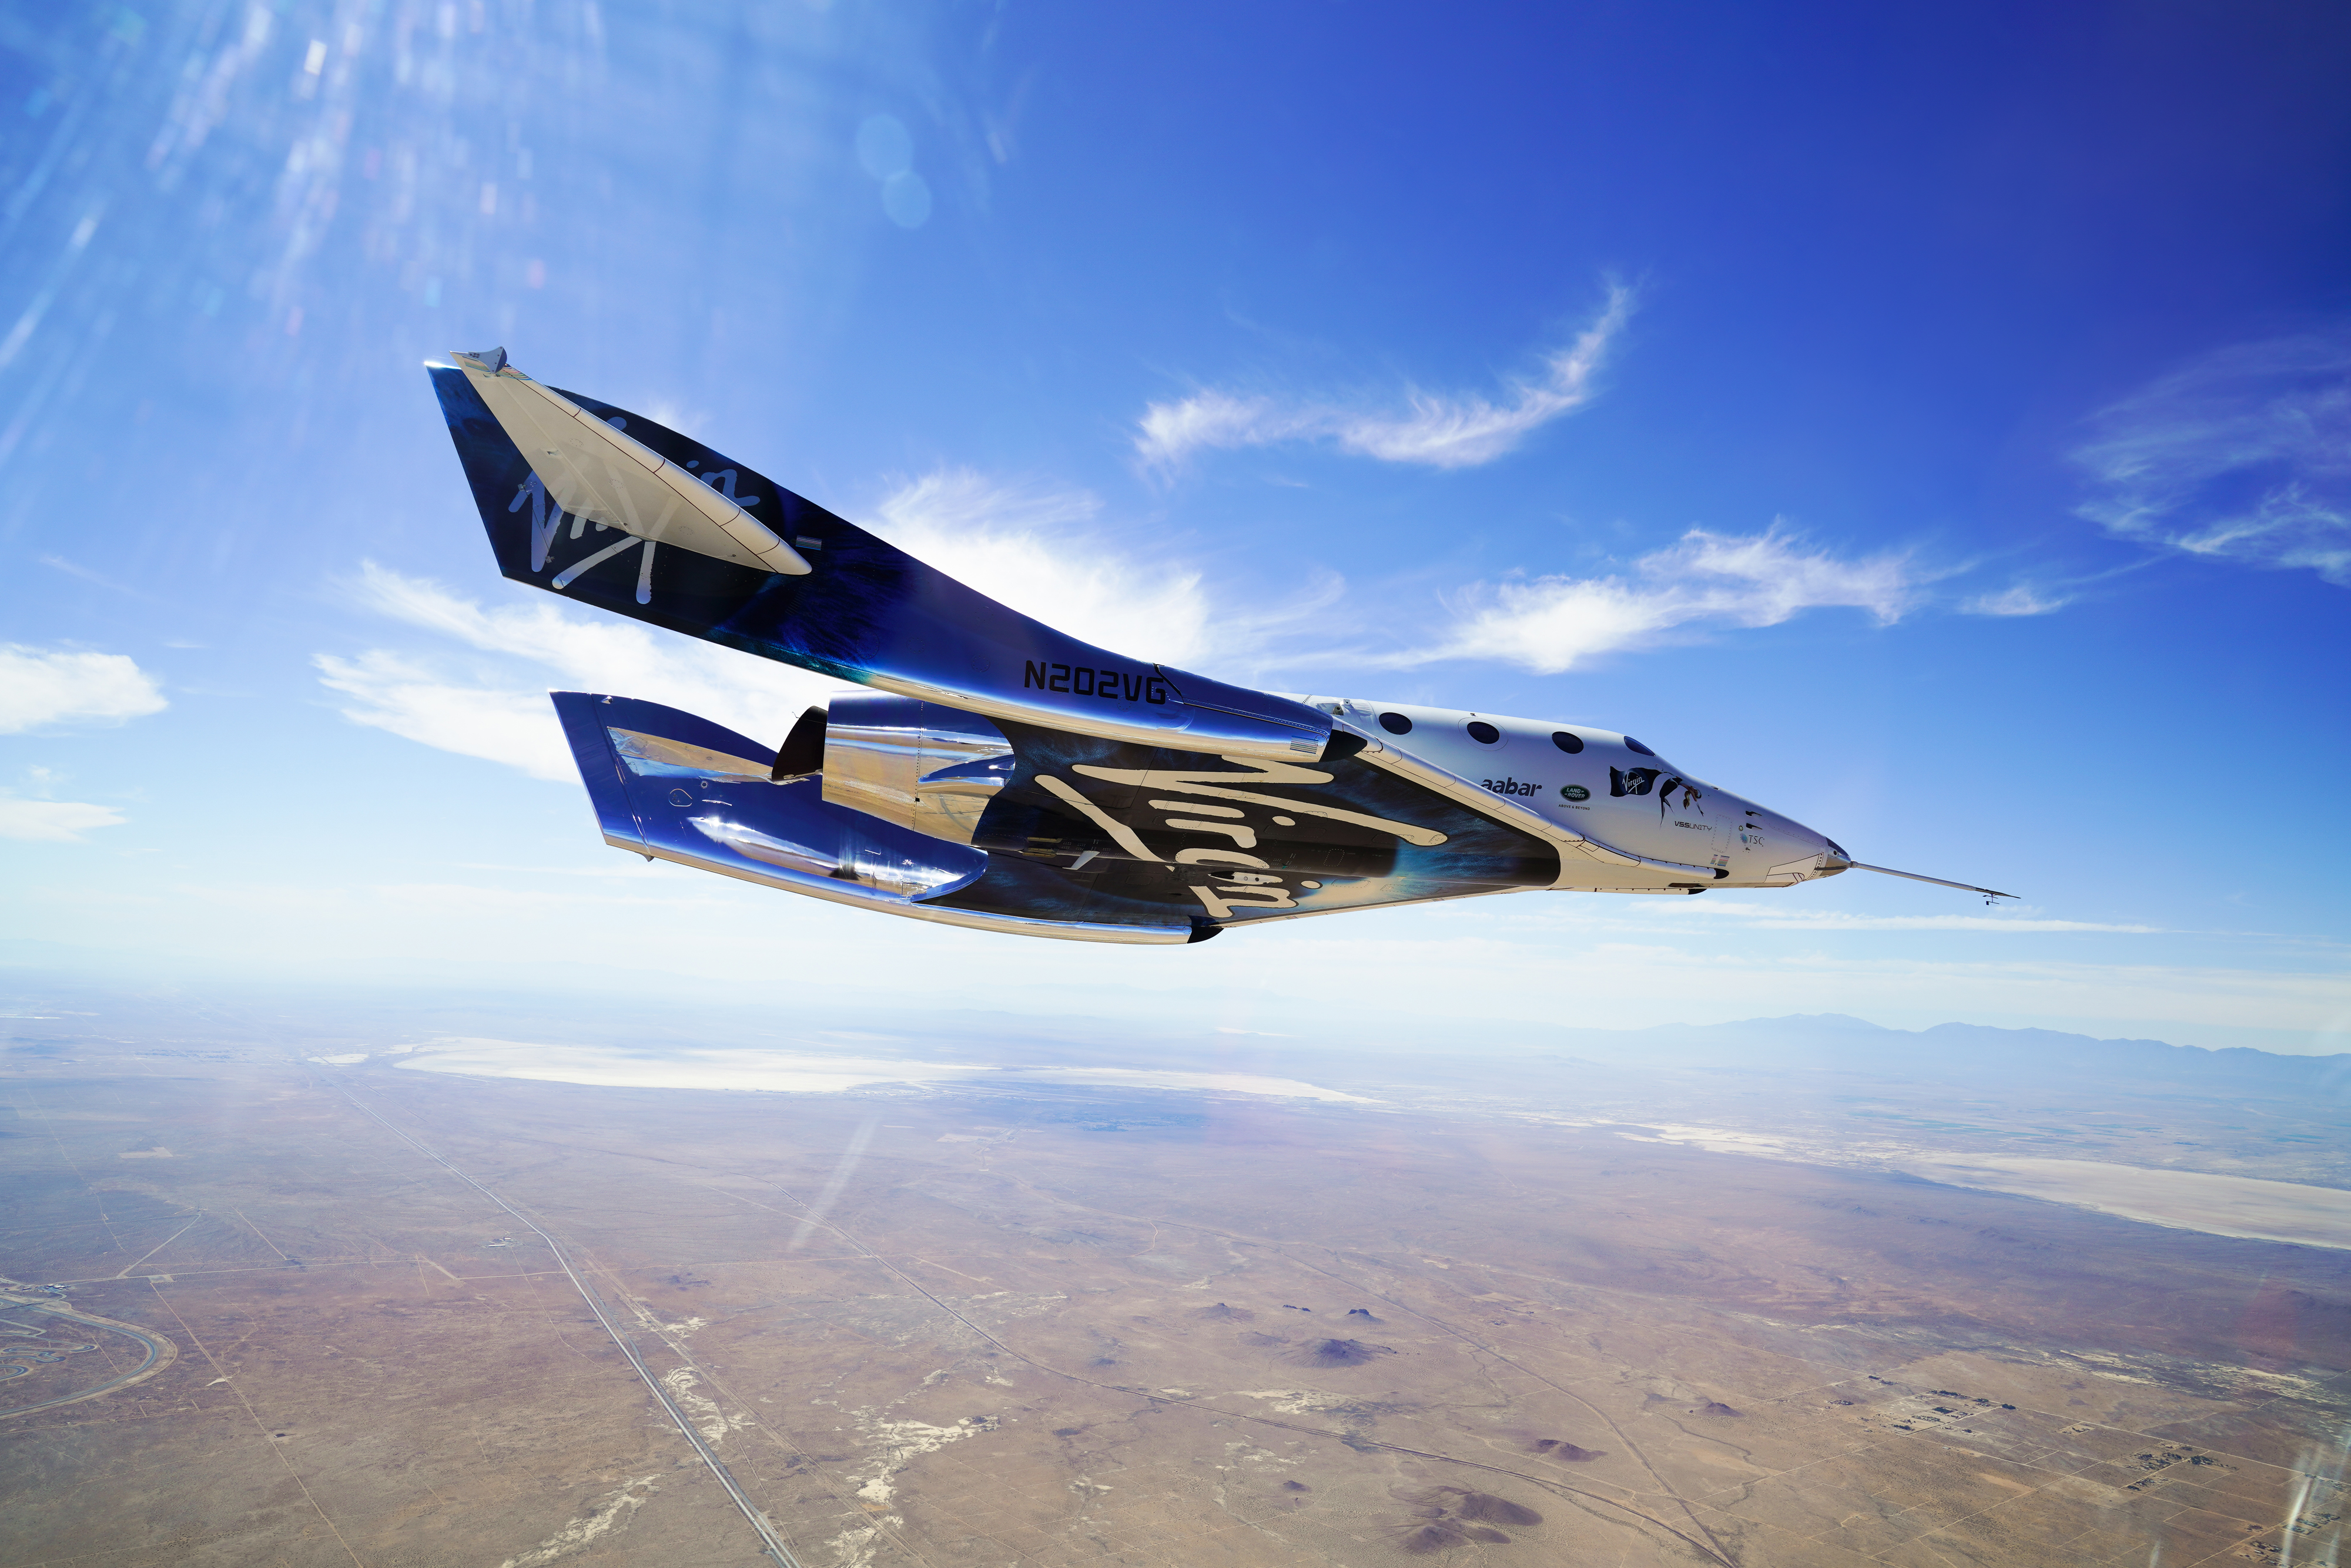 Space race: Boeing invests $20m in Richard Branson's Virgin Galactic as it prepares public listing